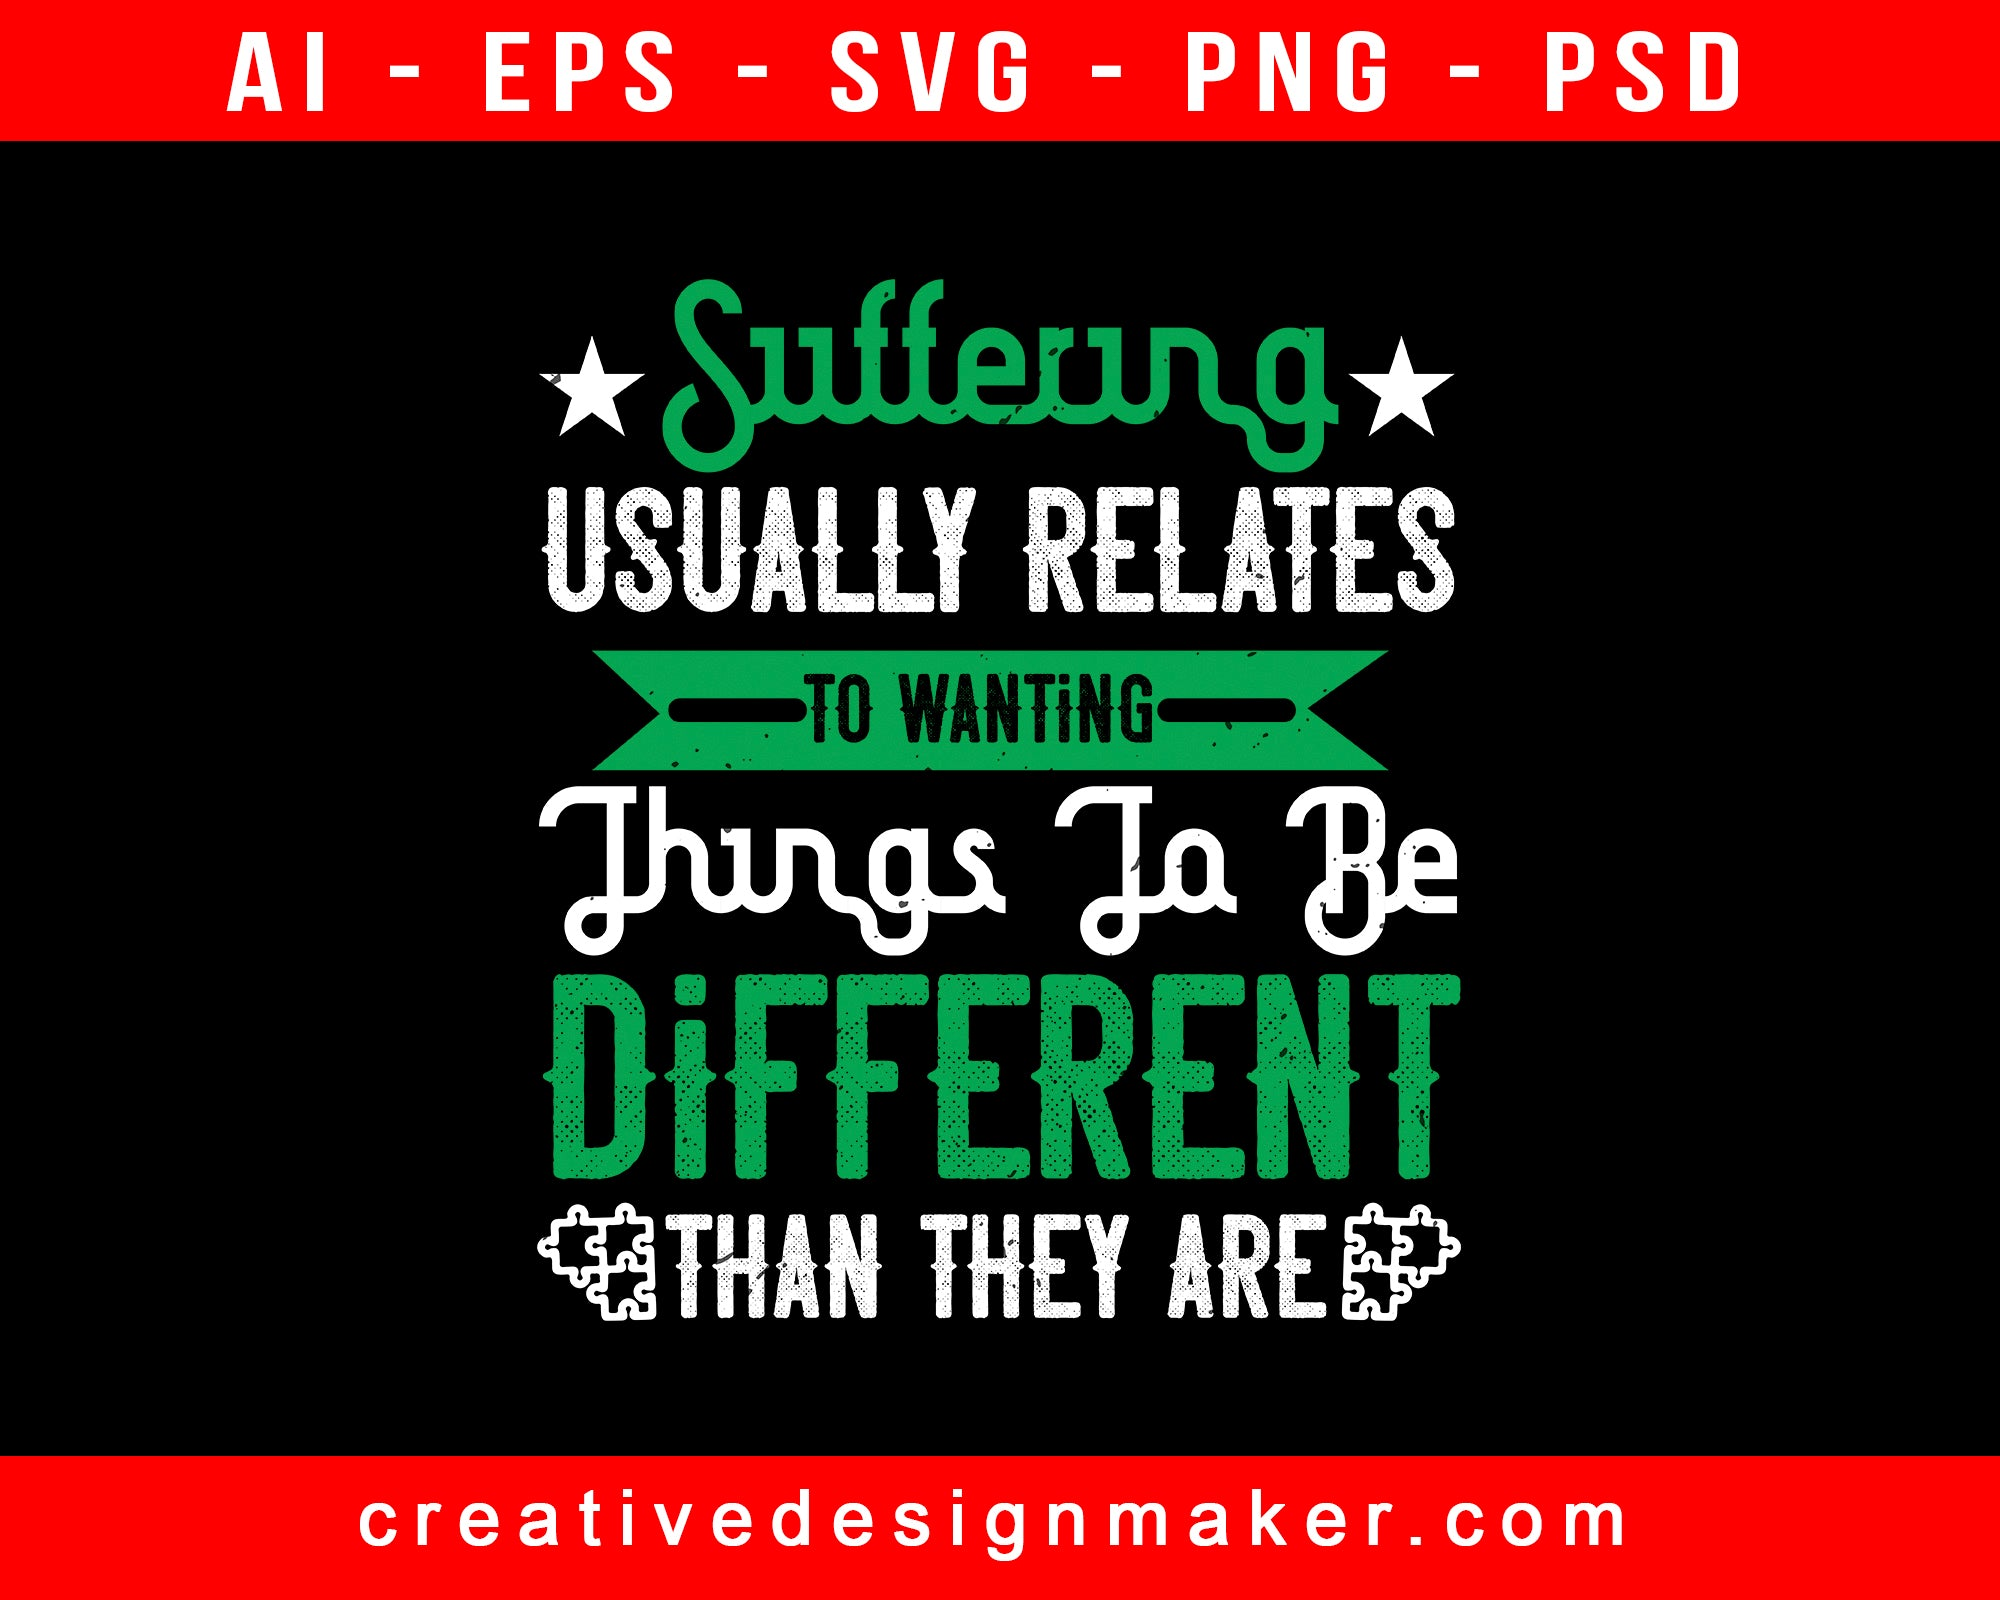 Suffering Usually Relates To Wanting Things To Be Different Than They Are Awareness Print Ready Editable T-Shirt SVG Design!